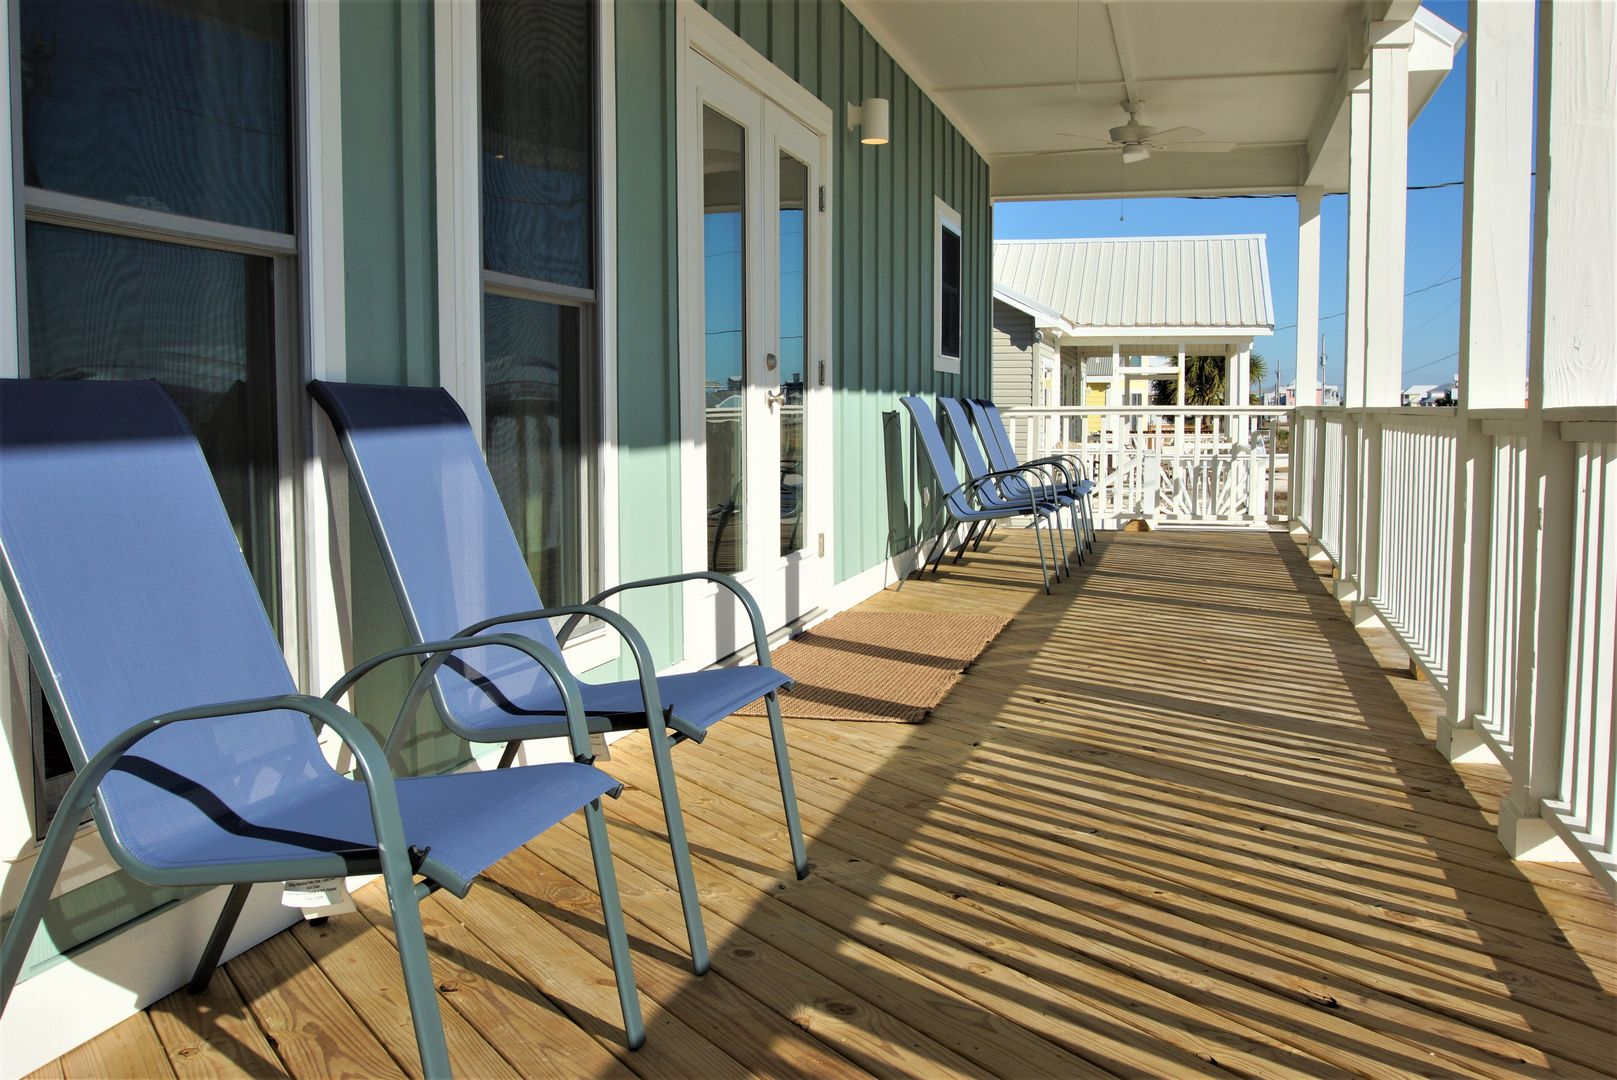 Plenty of seating on the balcony of this Vacation Rental in Gulf Shores AL.